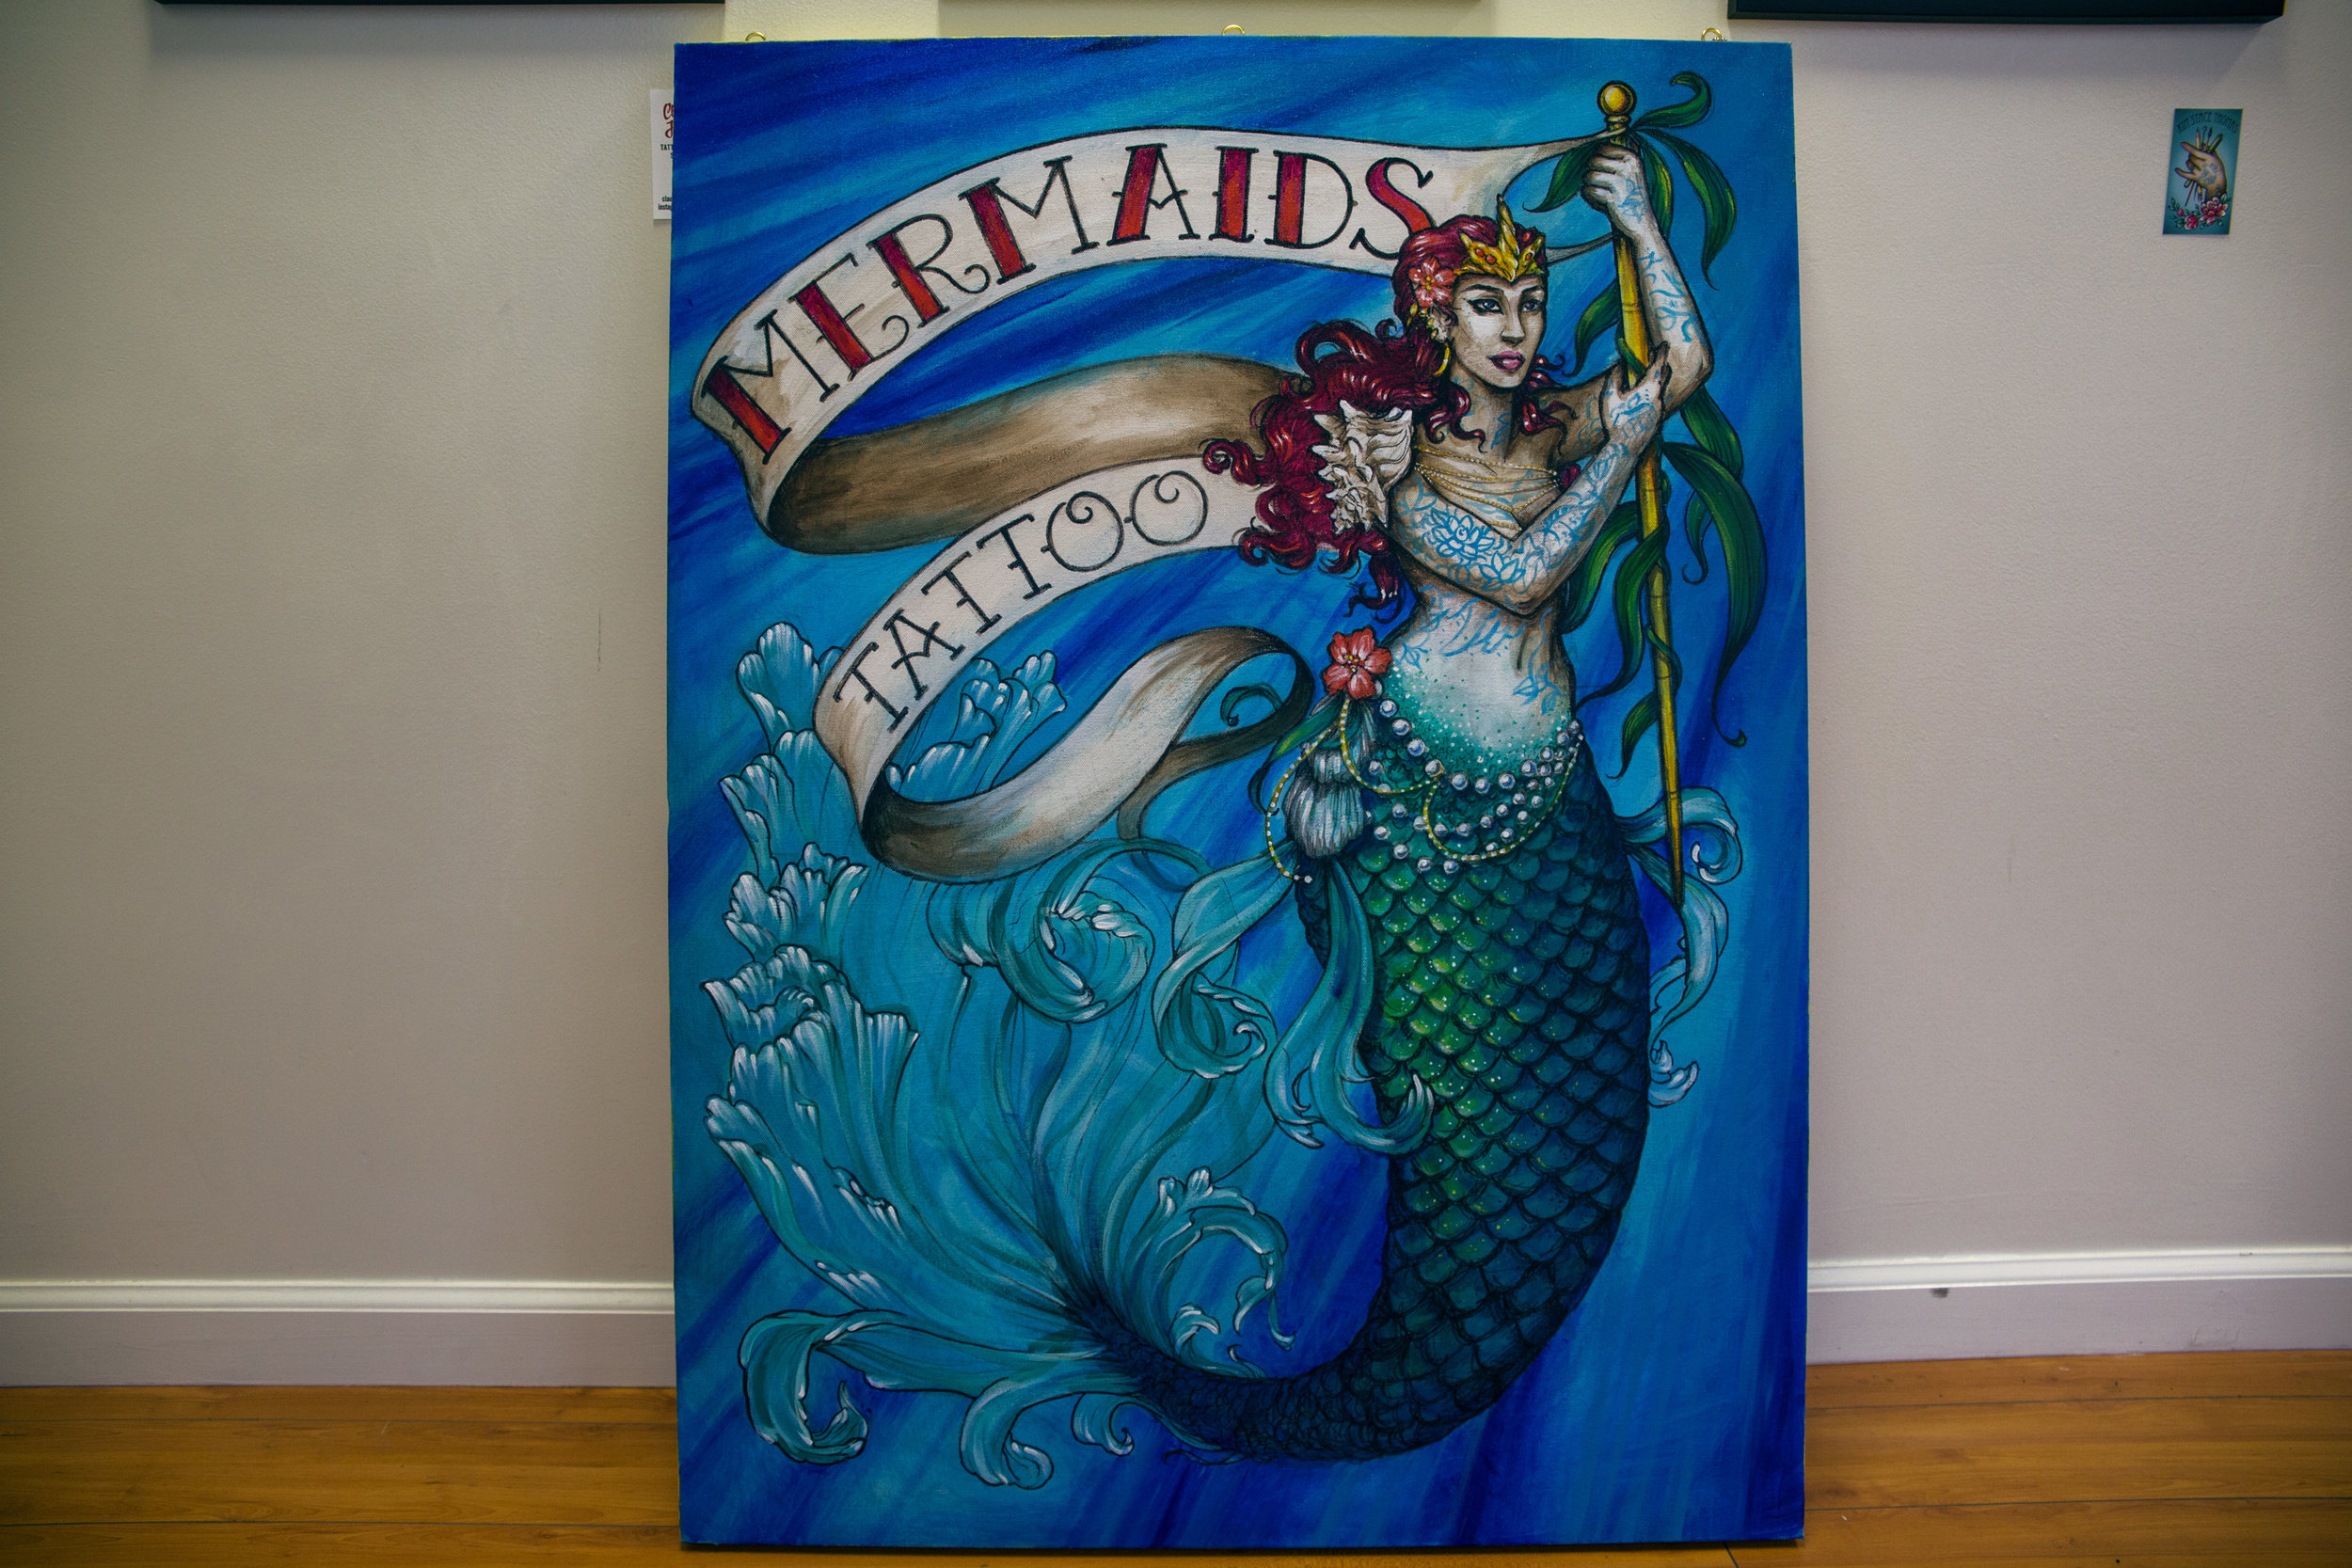 MERMAIDS TATTOO  - 3O32 MISSON STREET - 415.550.1400